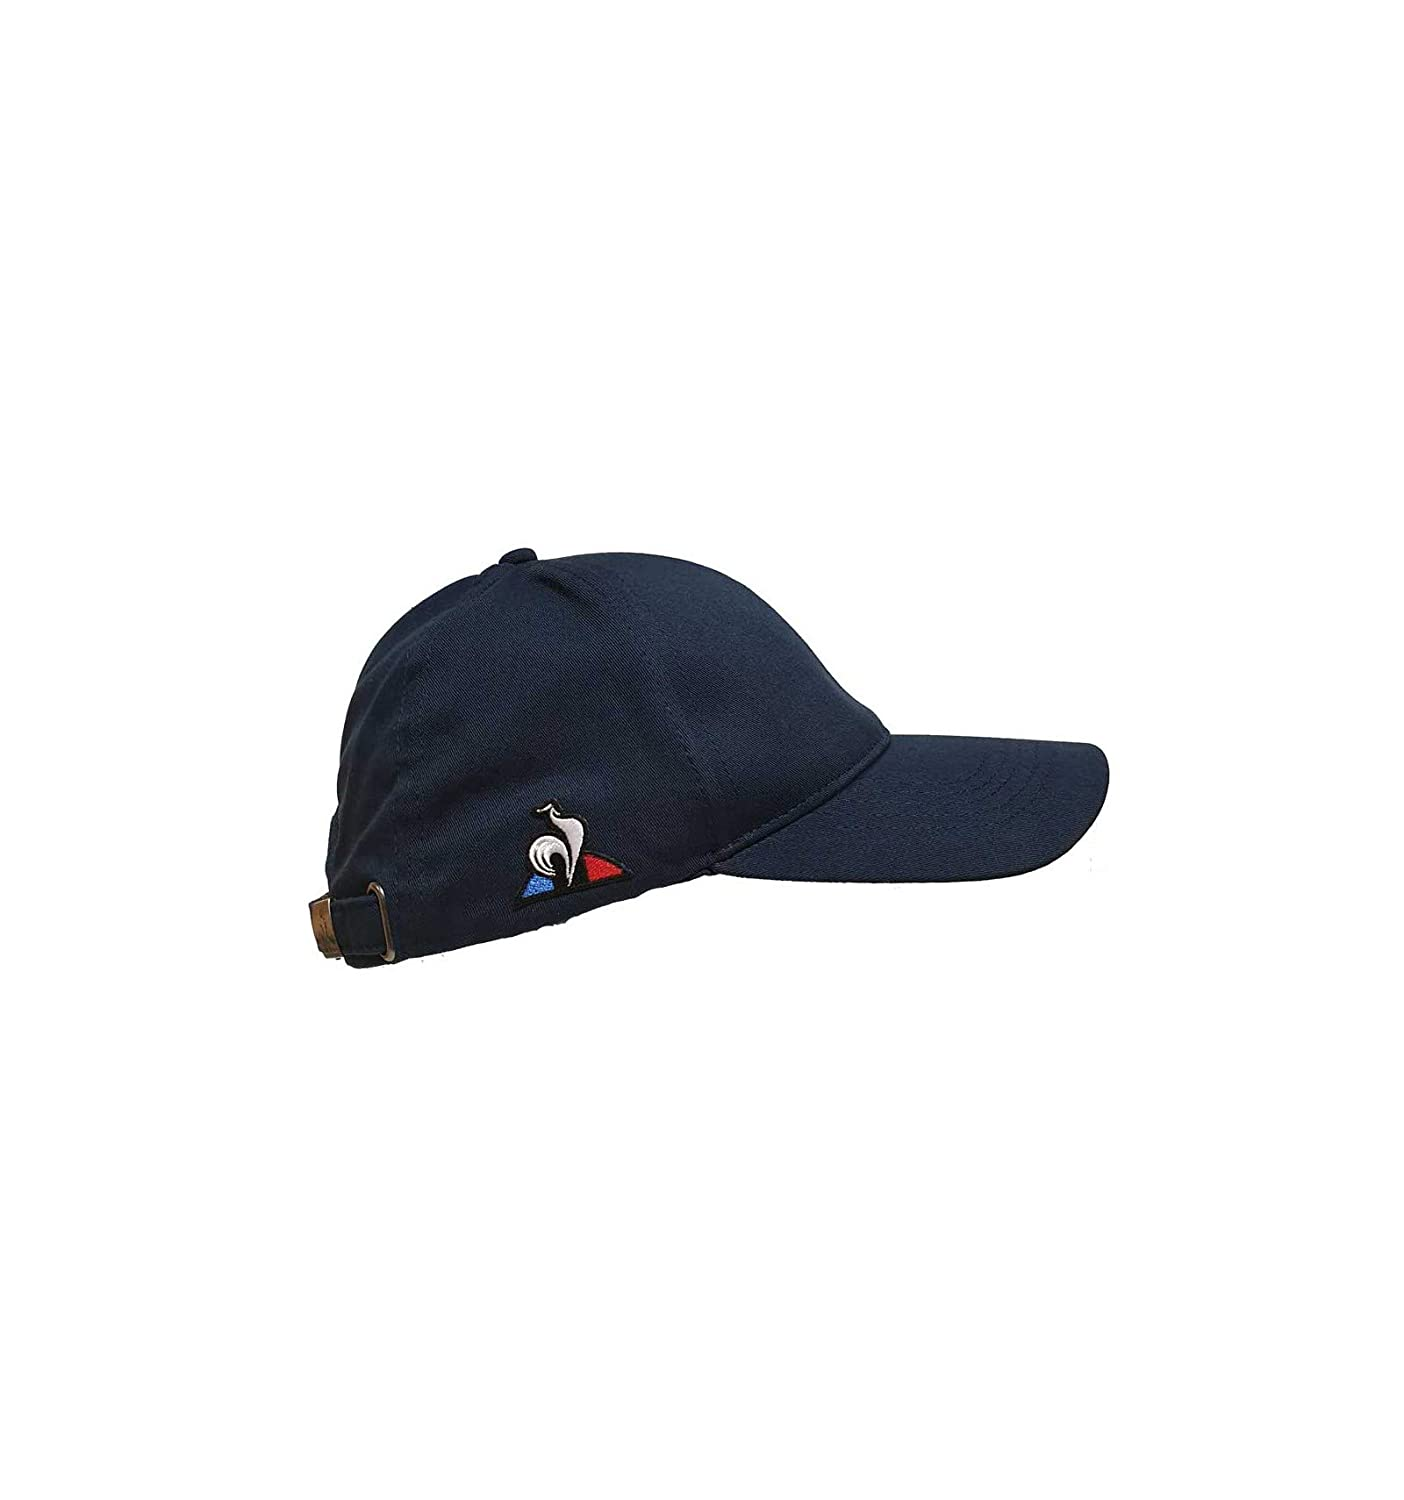 Le Coq Sportif Ffr Cap Enfant Dress Blues Unisex Adulto, Talla ...